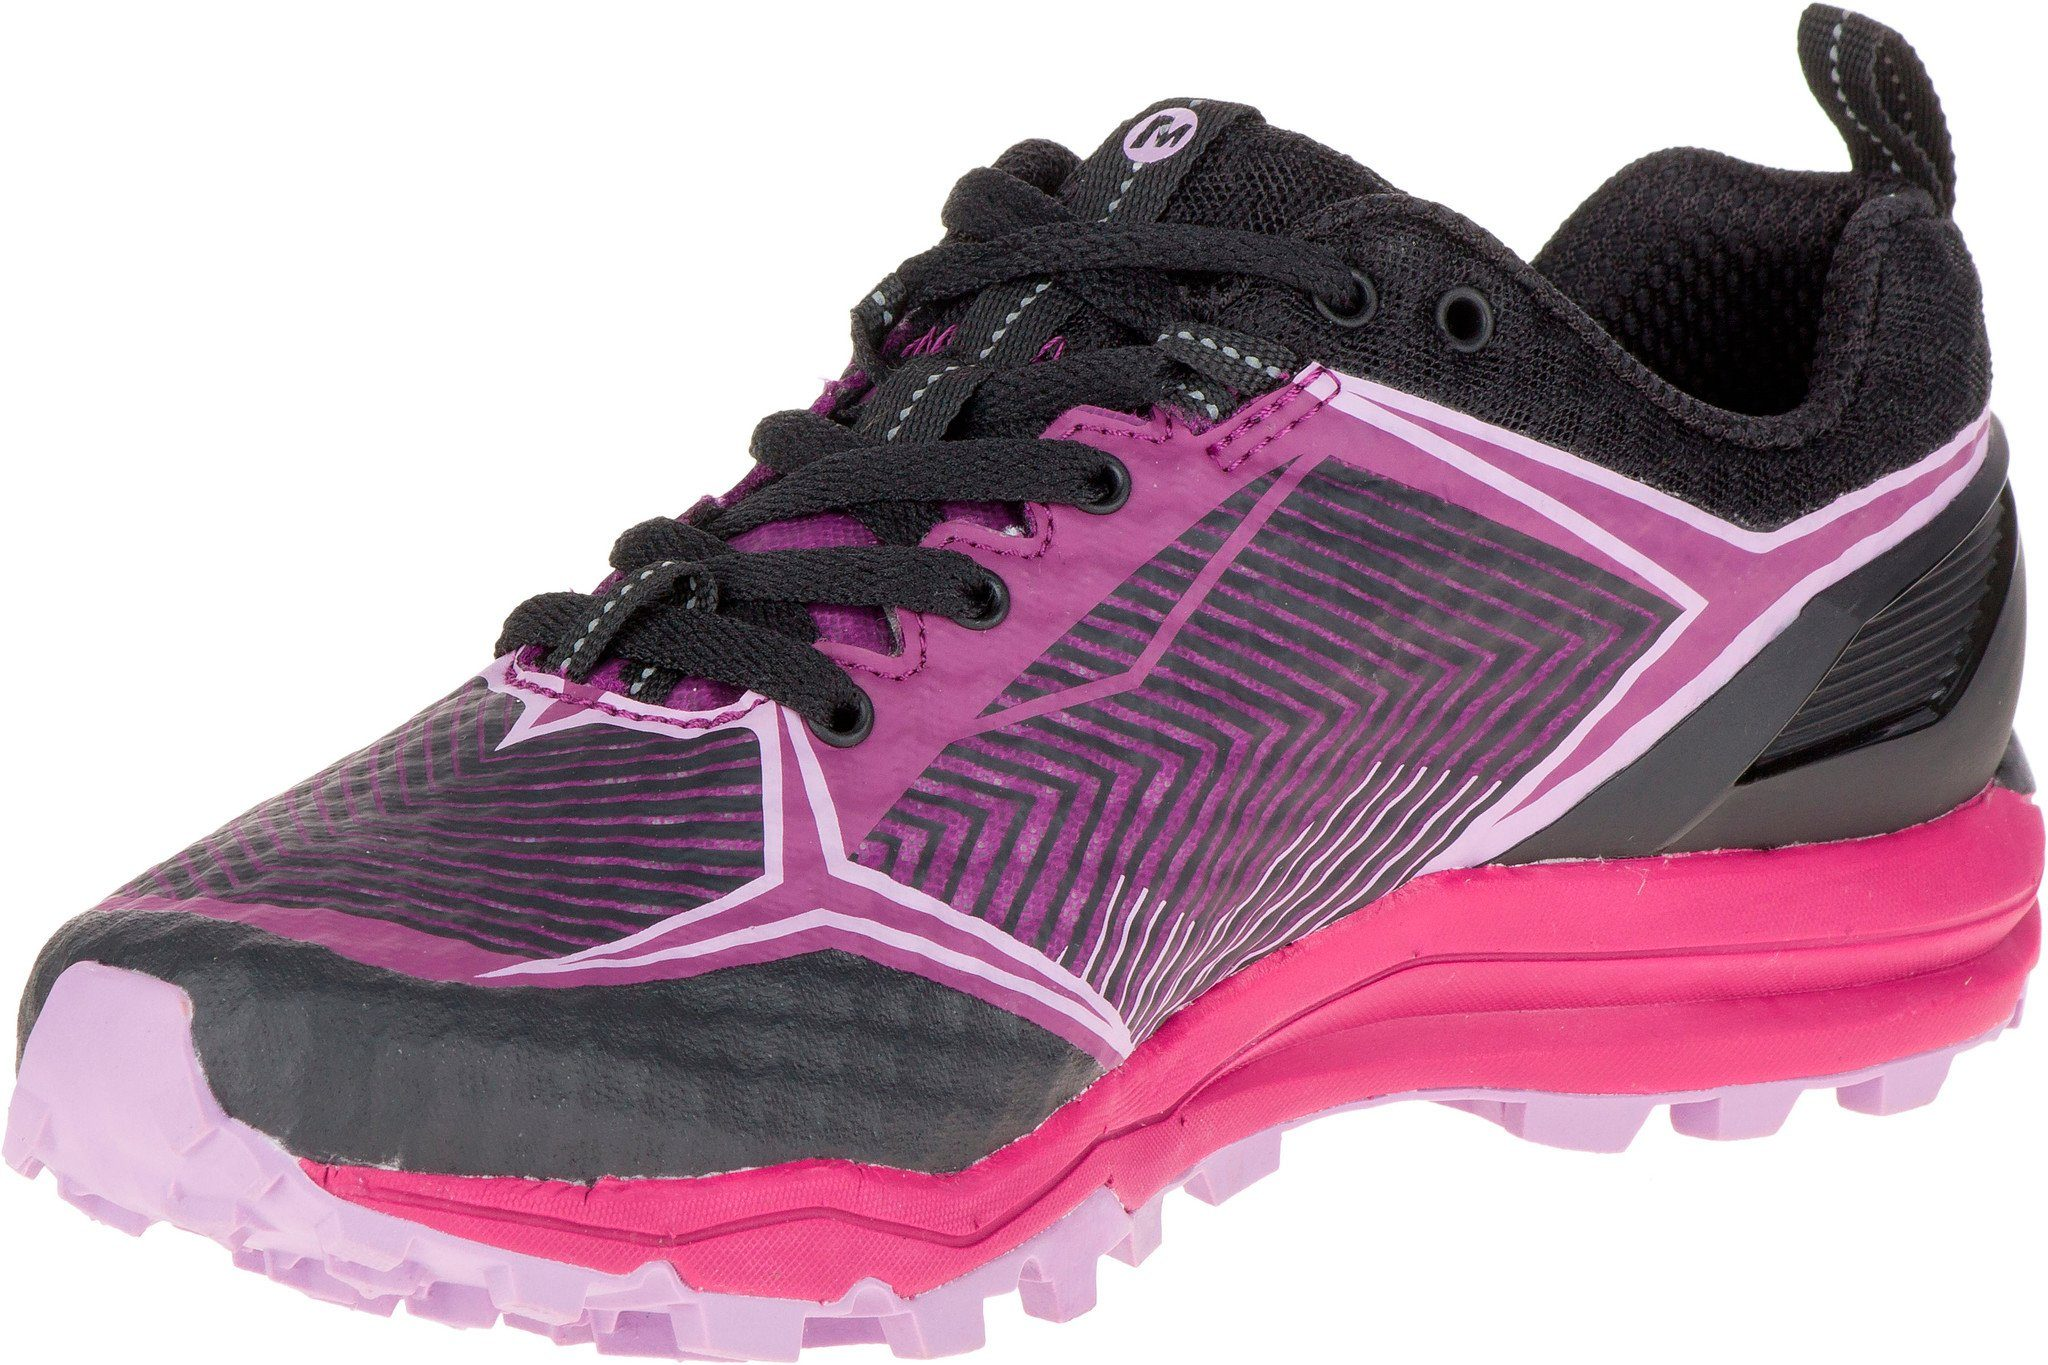 Merrell Runningschuh All Out Crush Shield Shoes Women online kaufen  schwarz